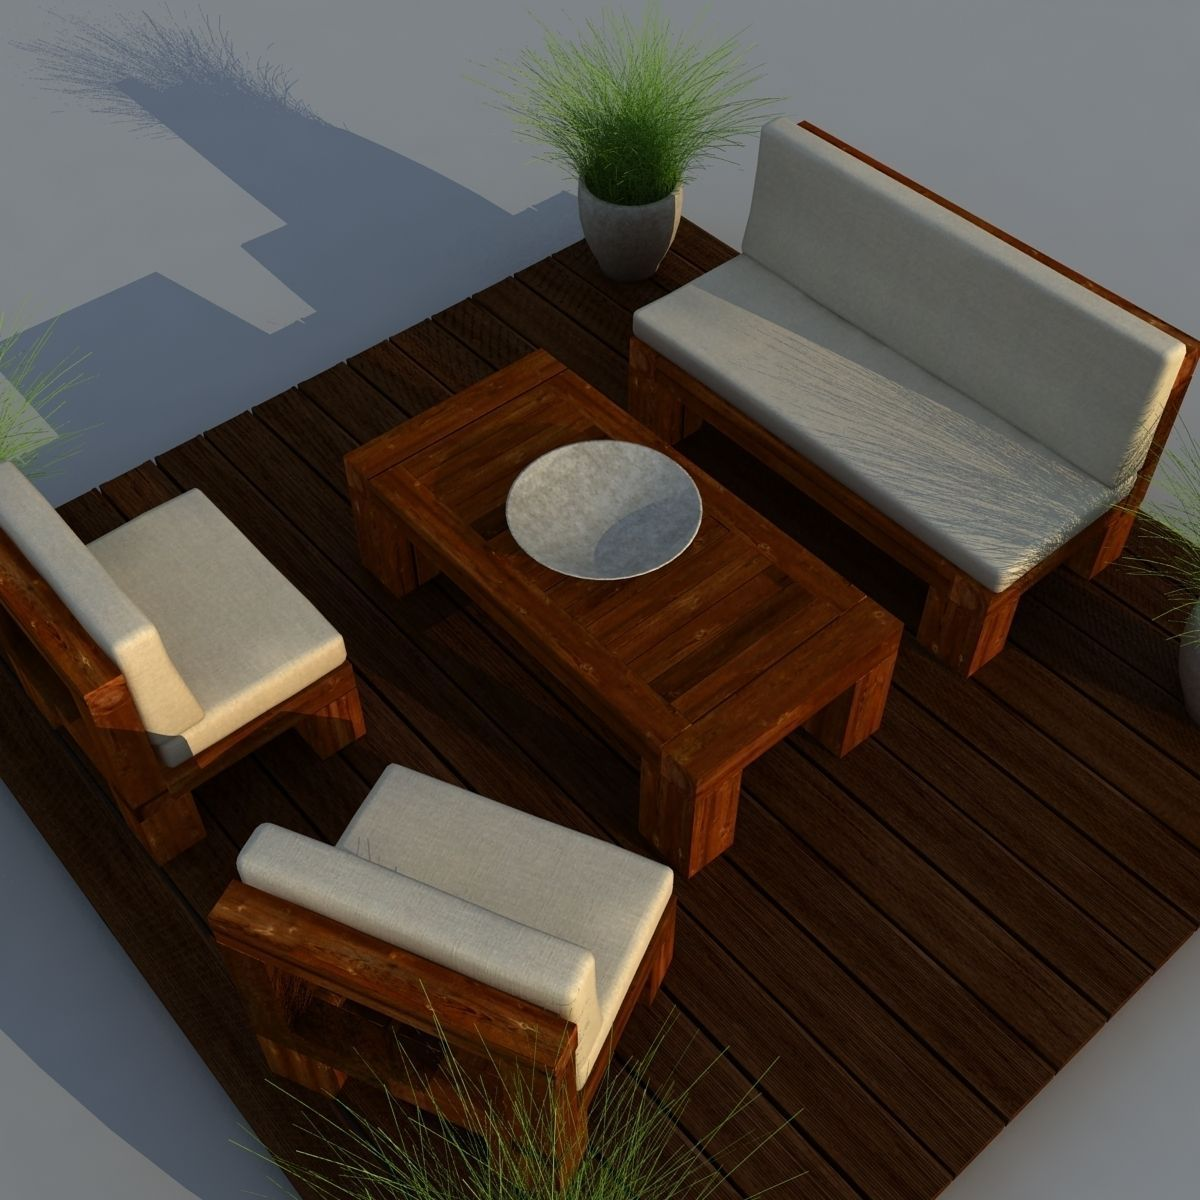 Lounge chair outdoor wood patio deck 3d model obj mtl cgtrader com -  Patio Furniture 3d Model Max Obj 3ds Fbx Mtl 7